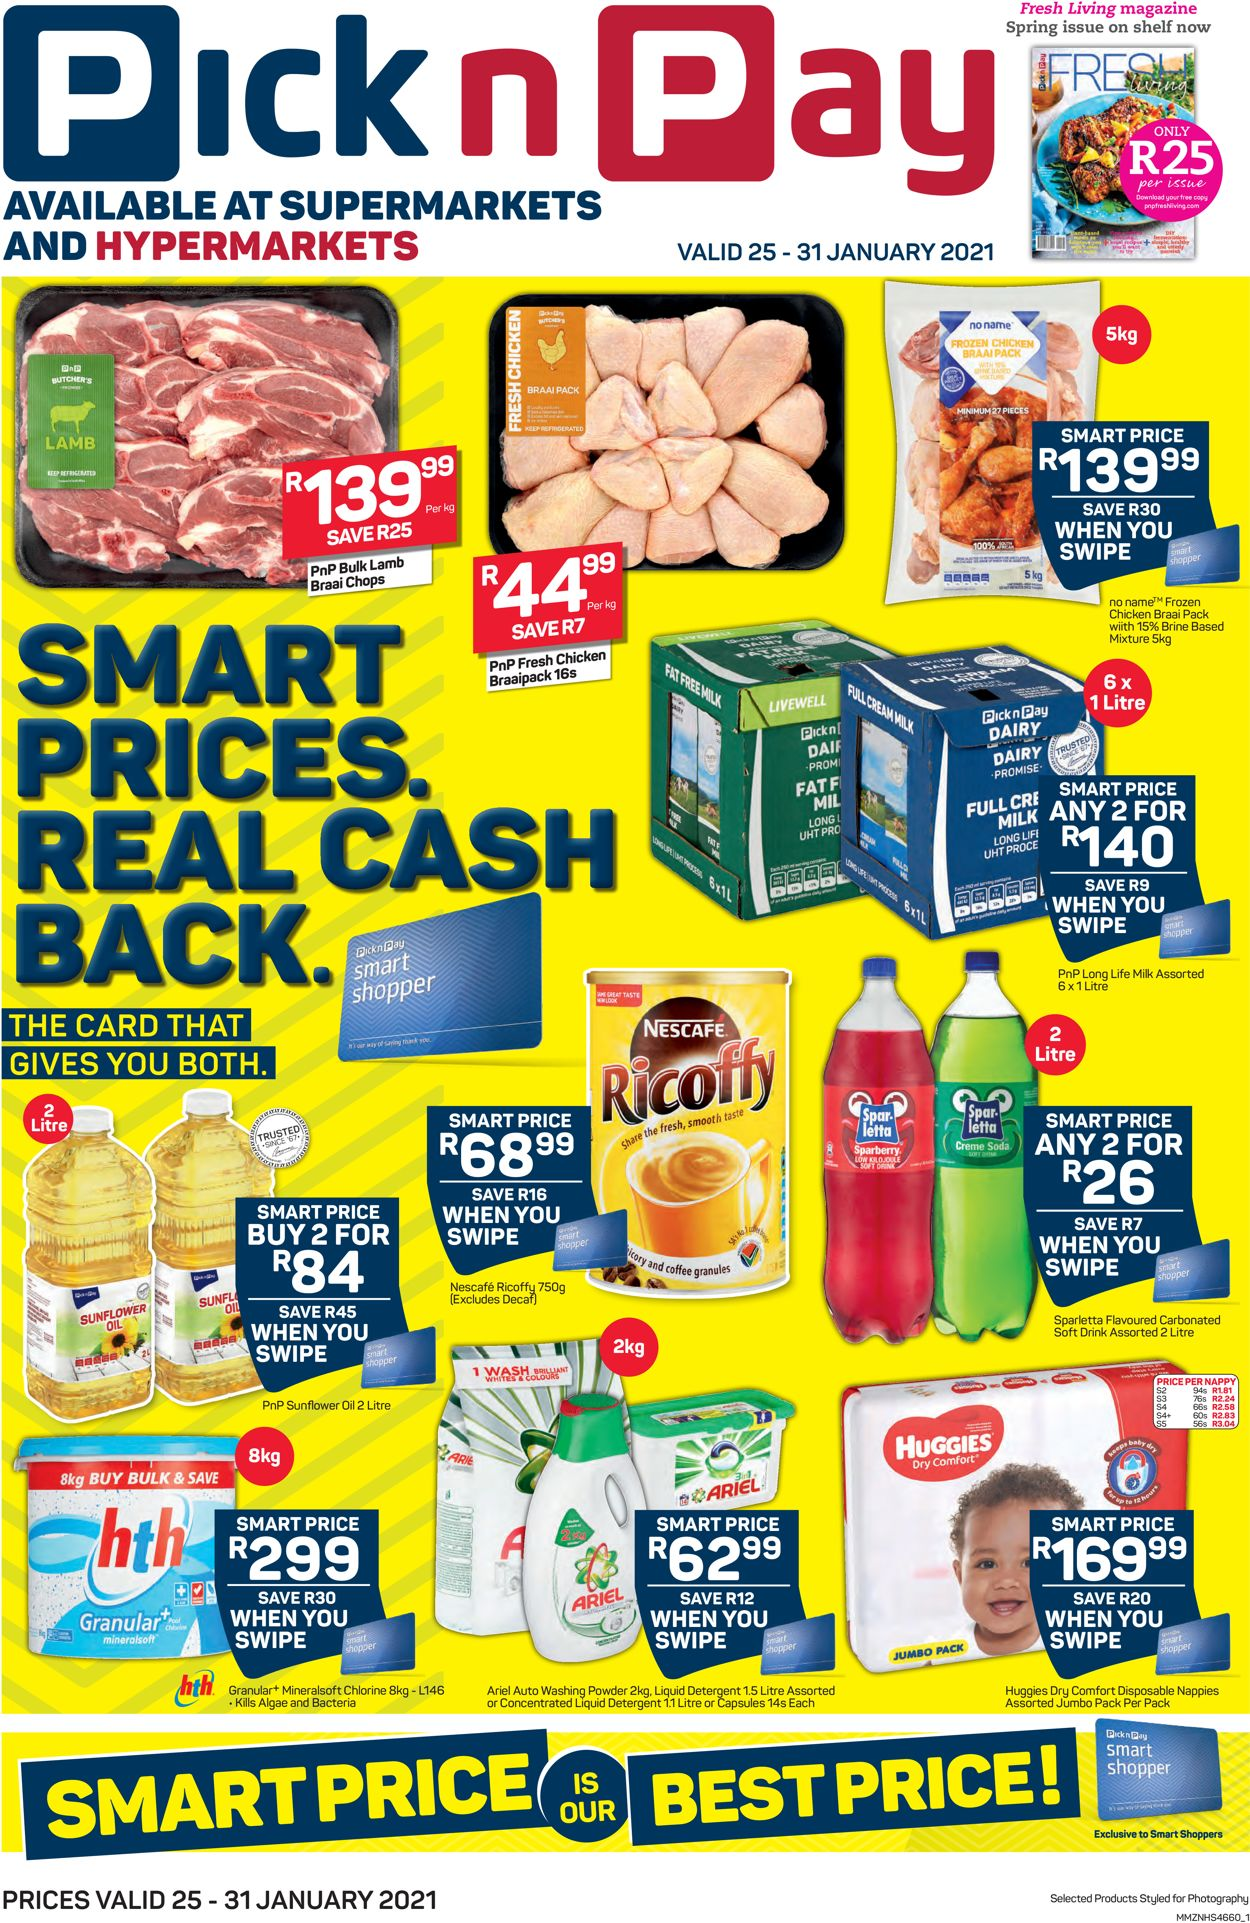 Pick n Pay Smart Price 2021 Catalogue - 2021/01/25-2021/01/31